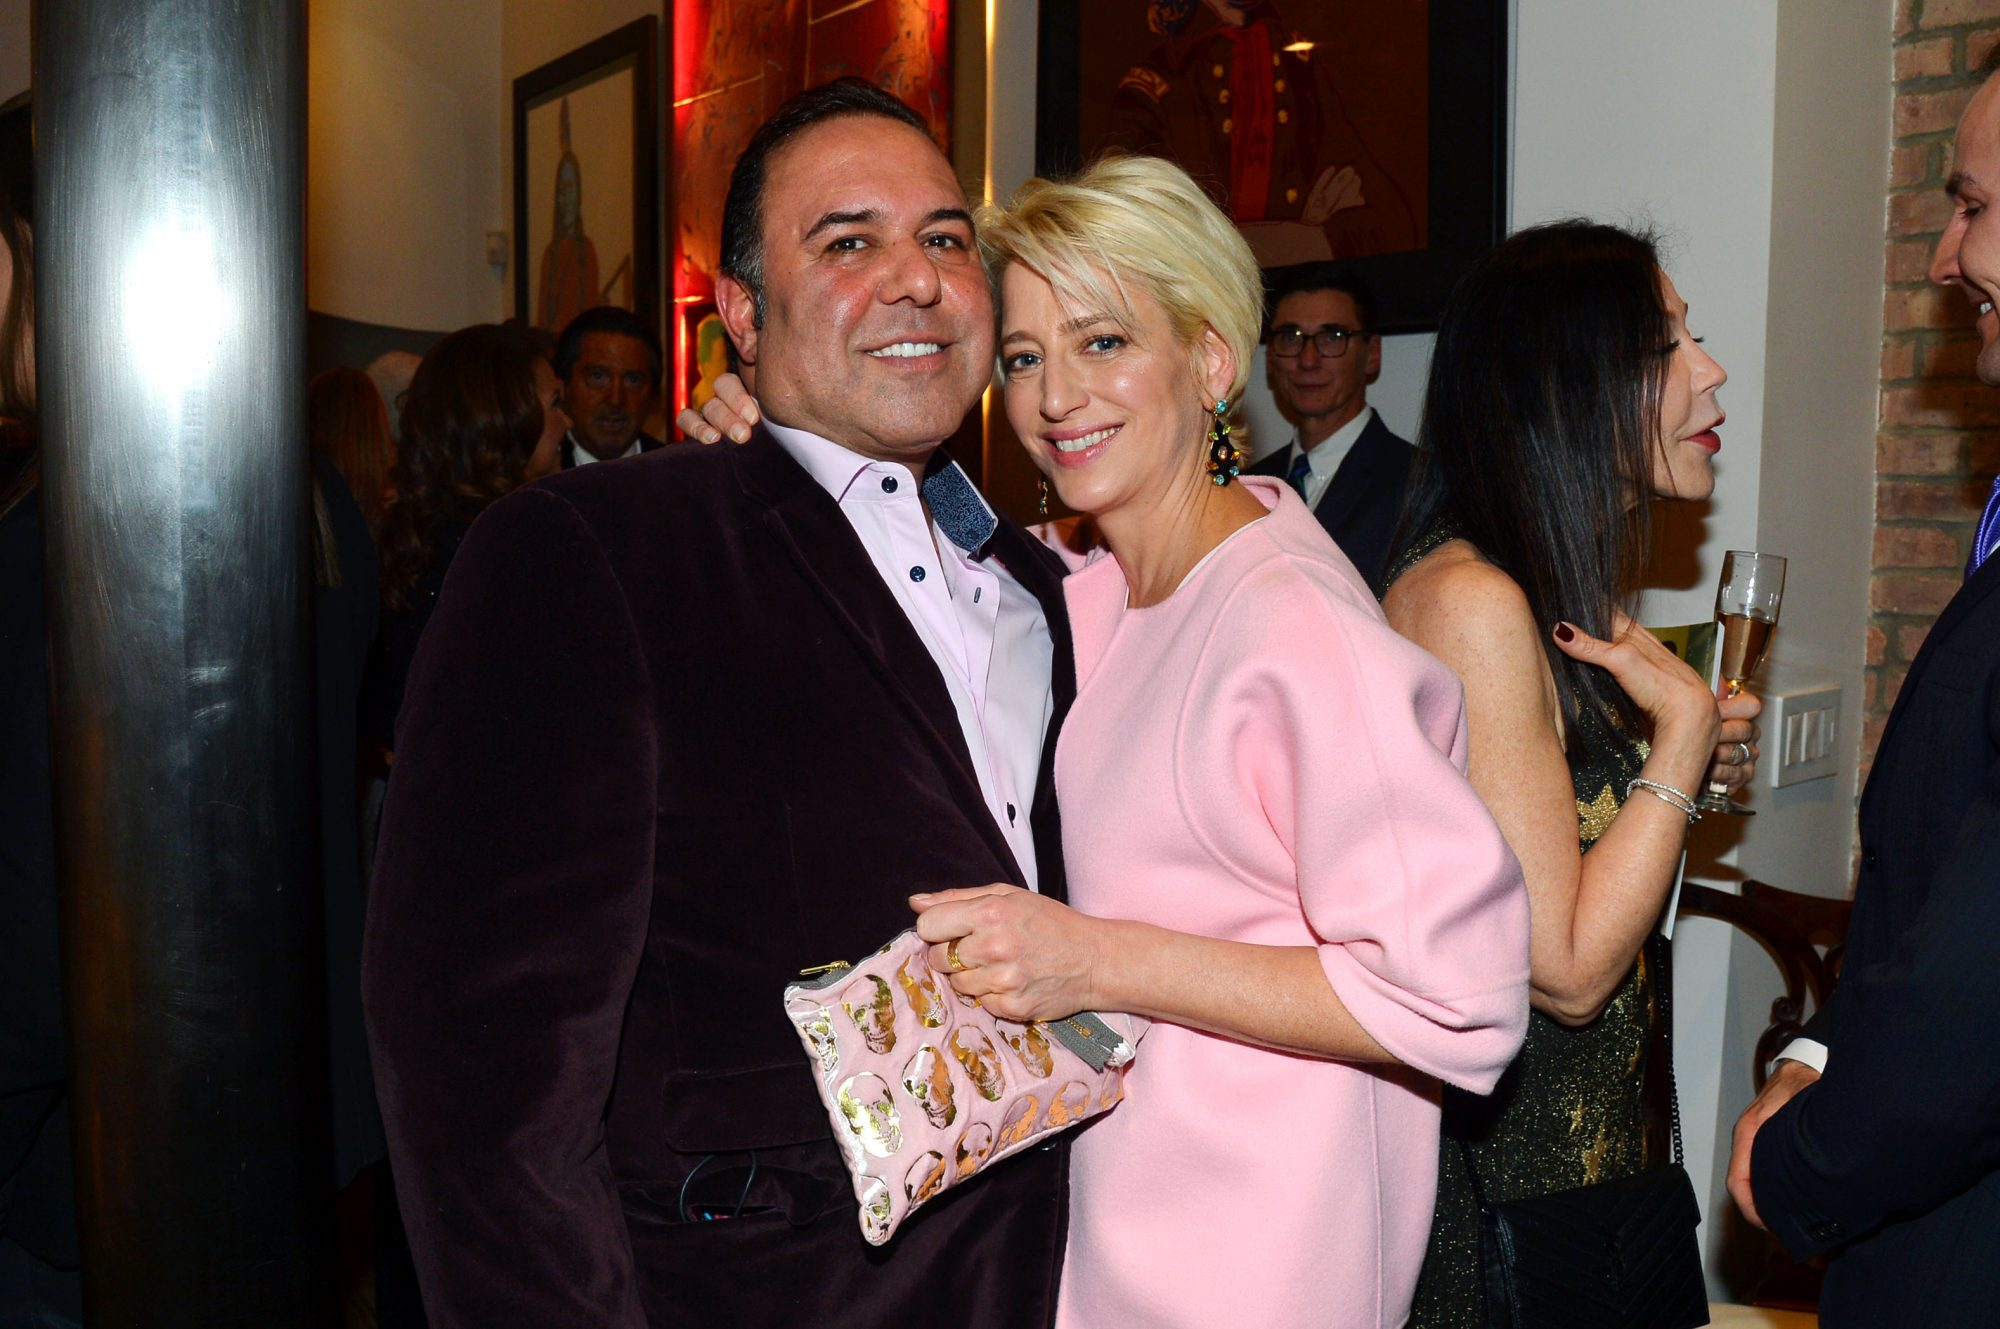 John Mahdessian and Dorinda Medley